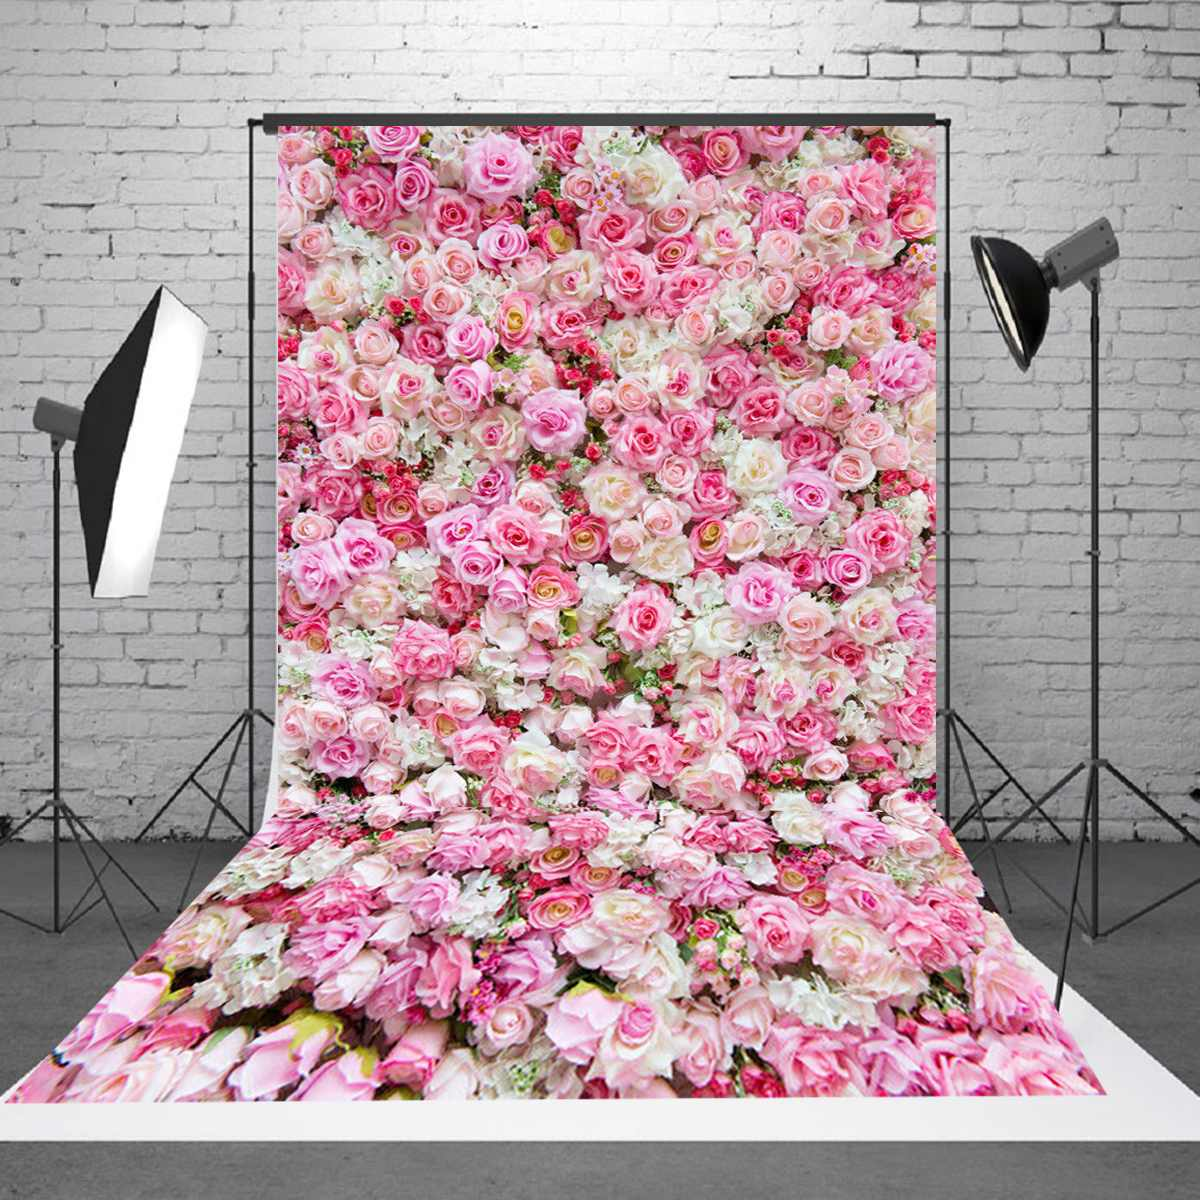 Backdrop Photography Flowers Photo-Background-Cloth Wedding-Rose Wall-Studio 5x7ft 3D